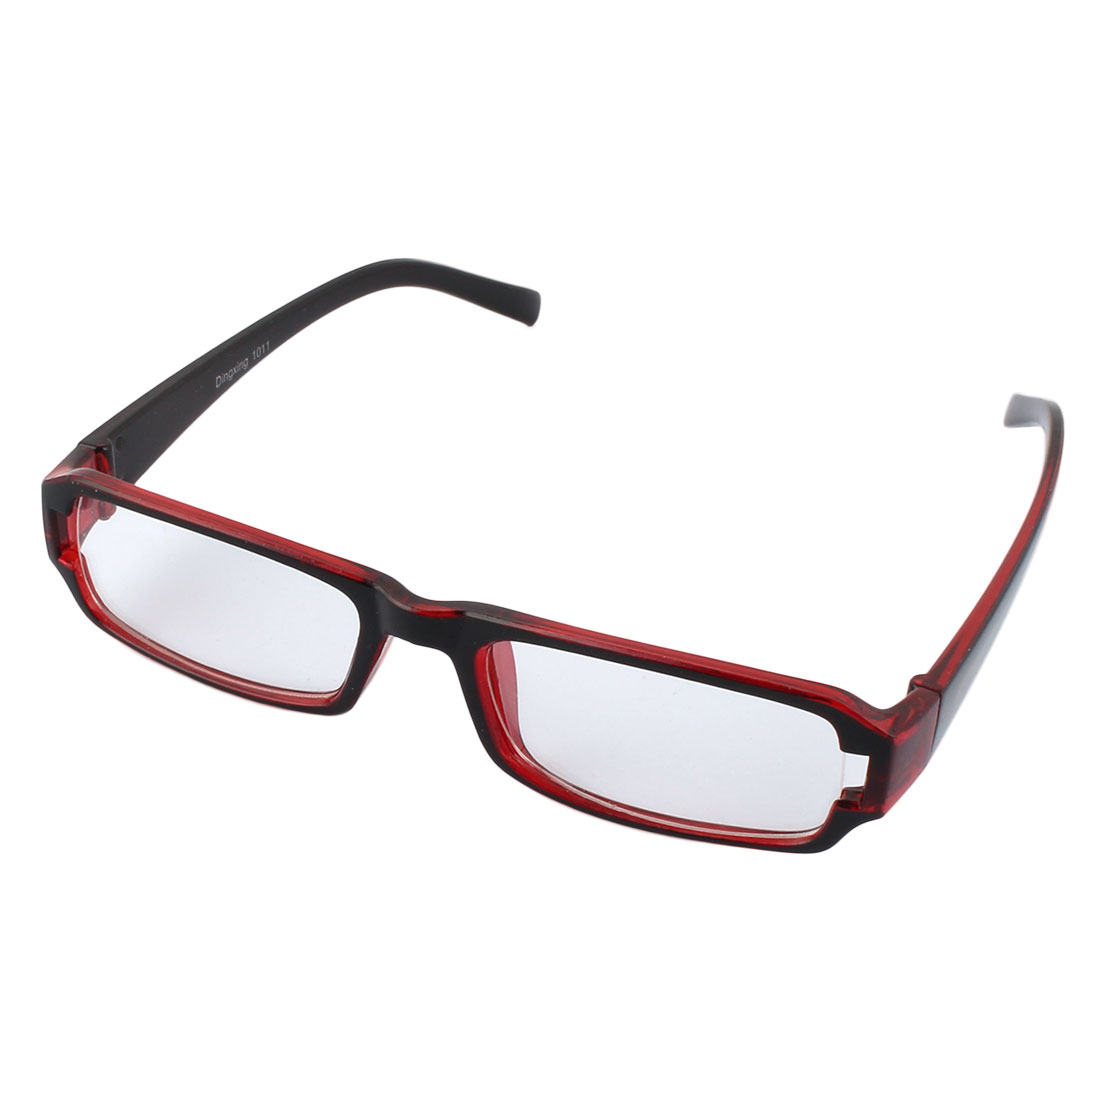 Plastic Full Frame Single Bridge Eyewear Eyeglass Spectacles for Women